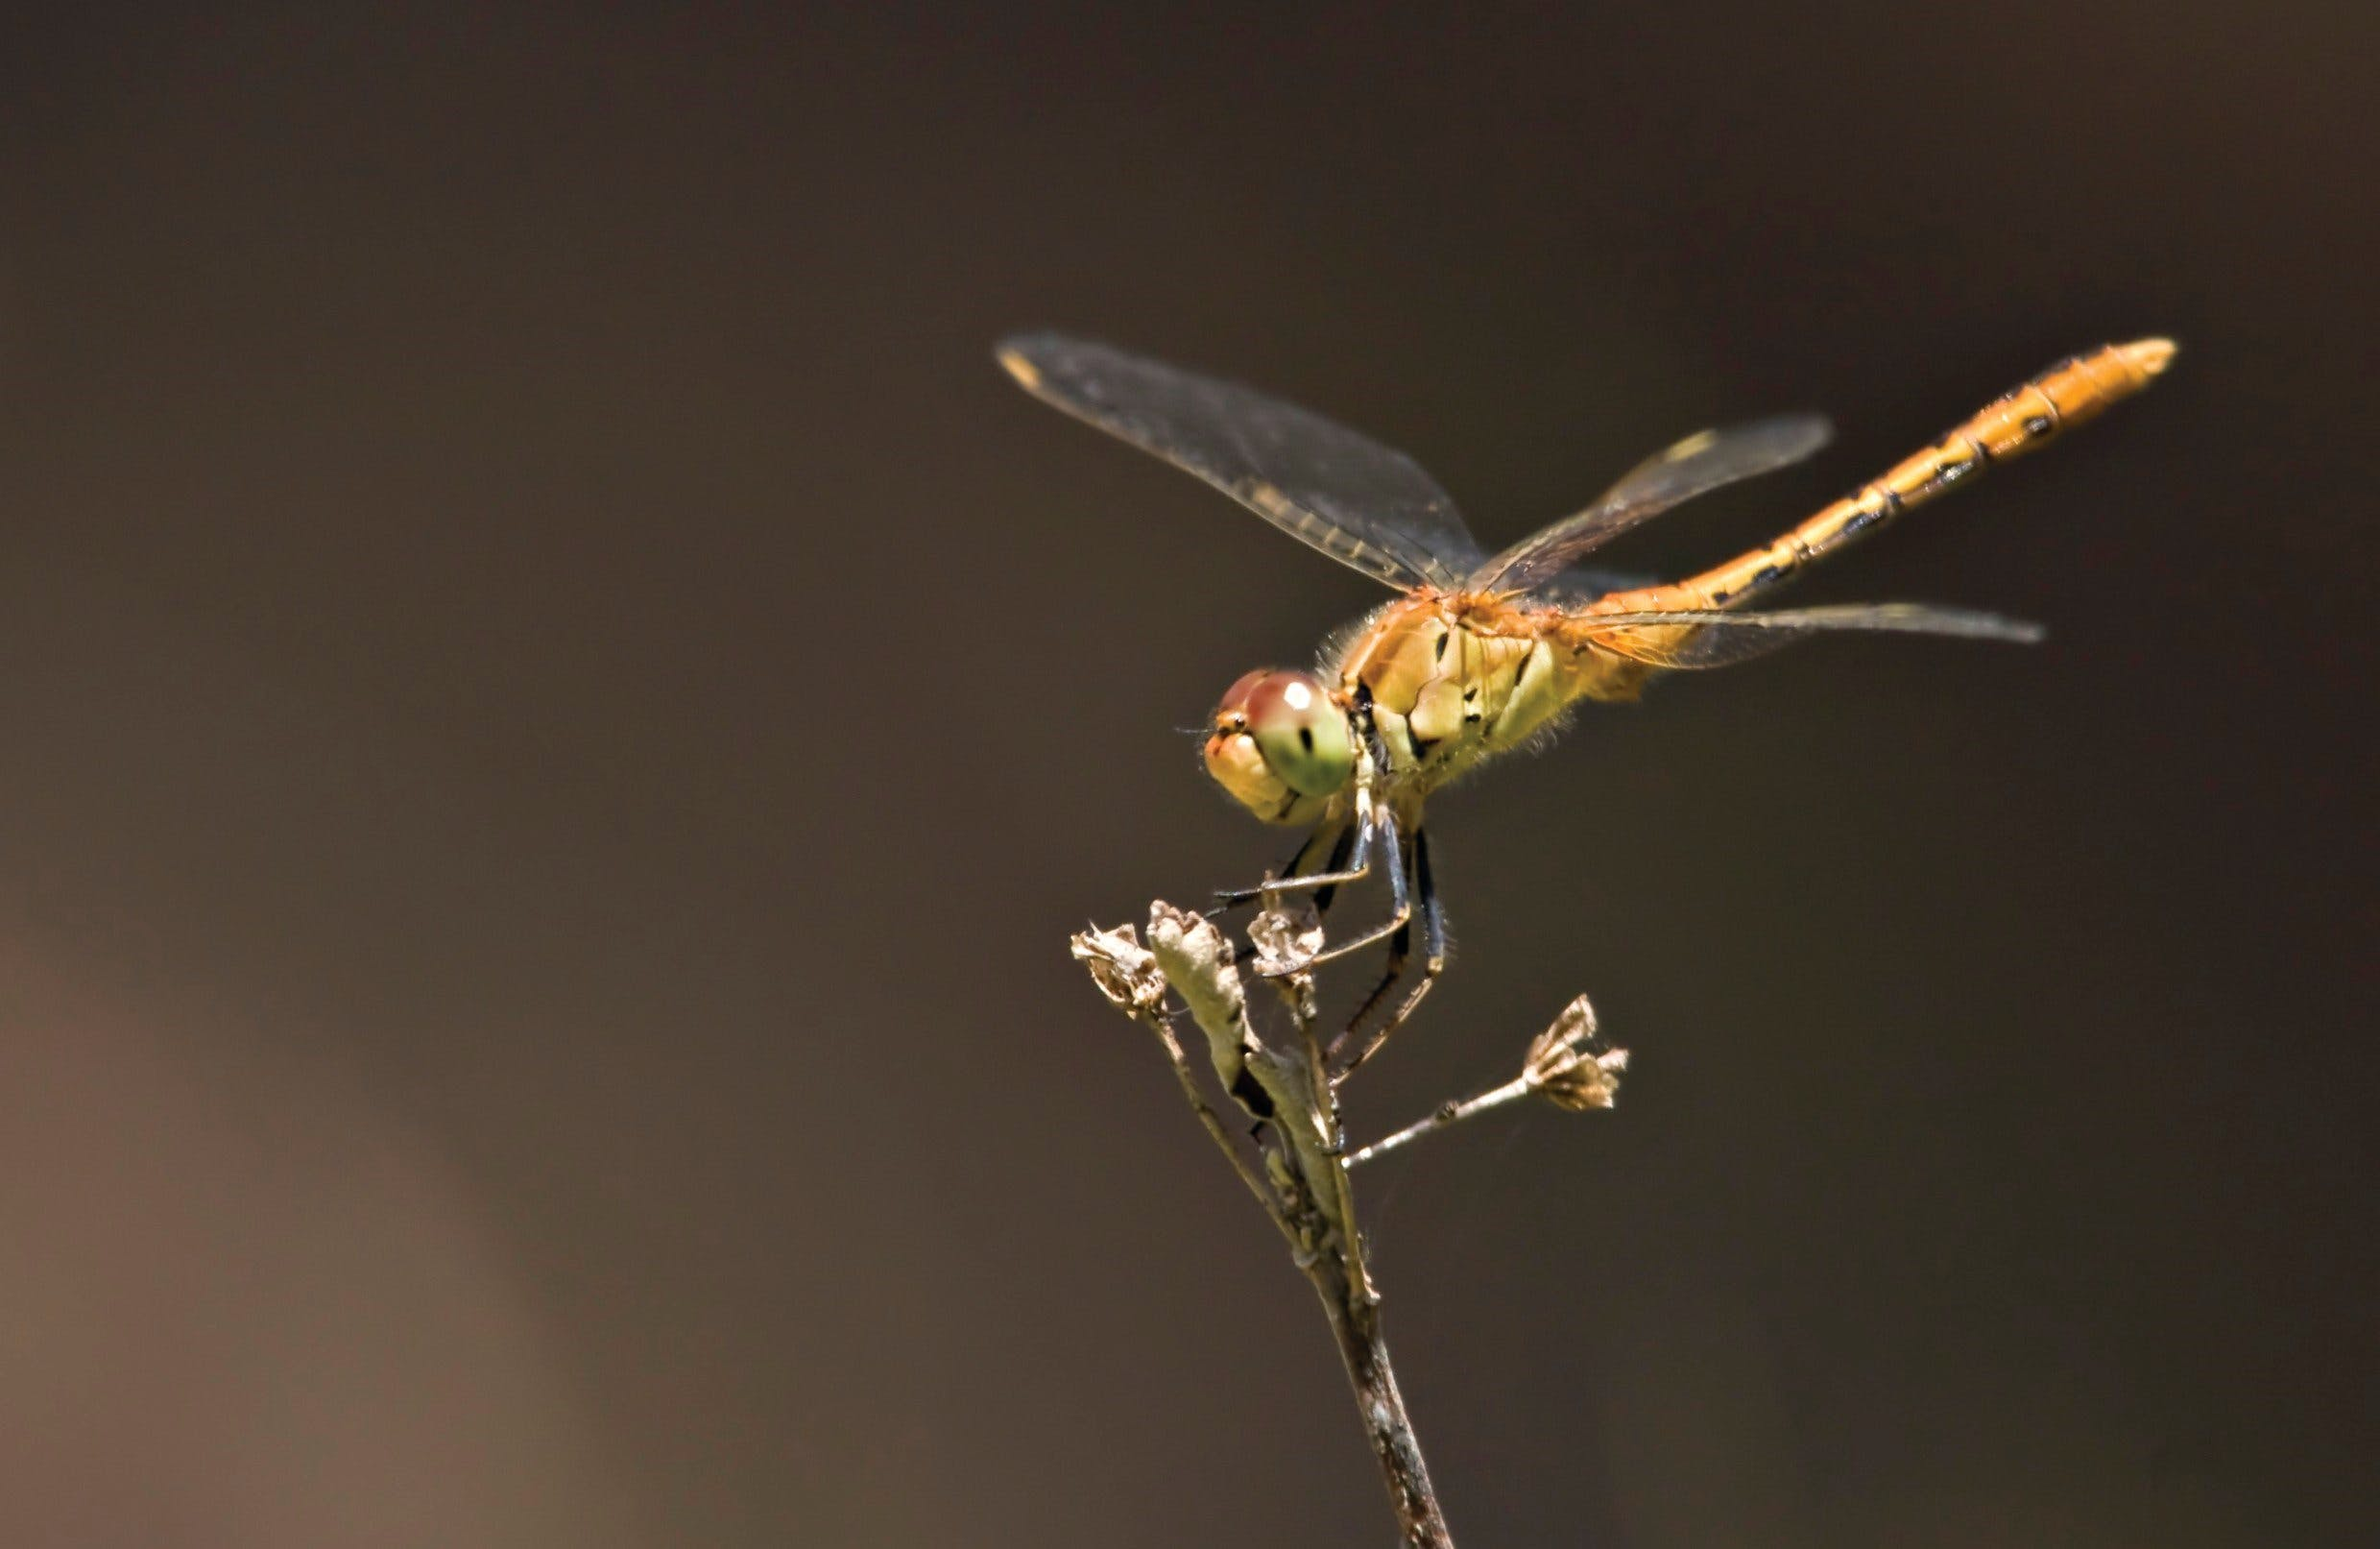 Dragonfly Discovery - eAccommodation